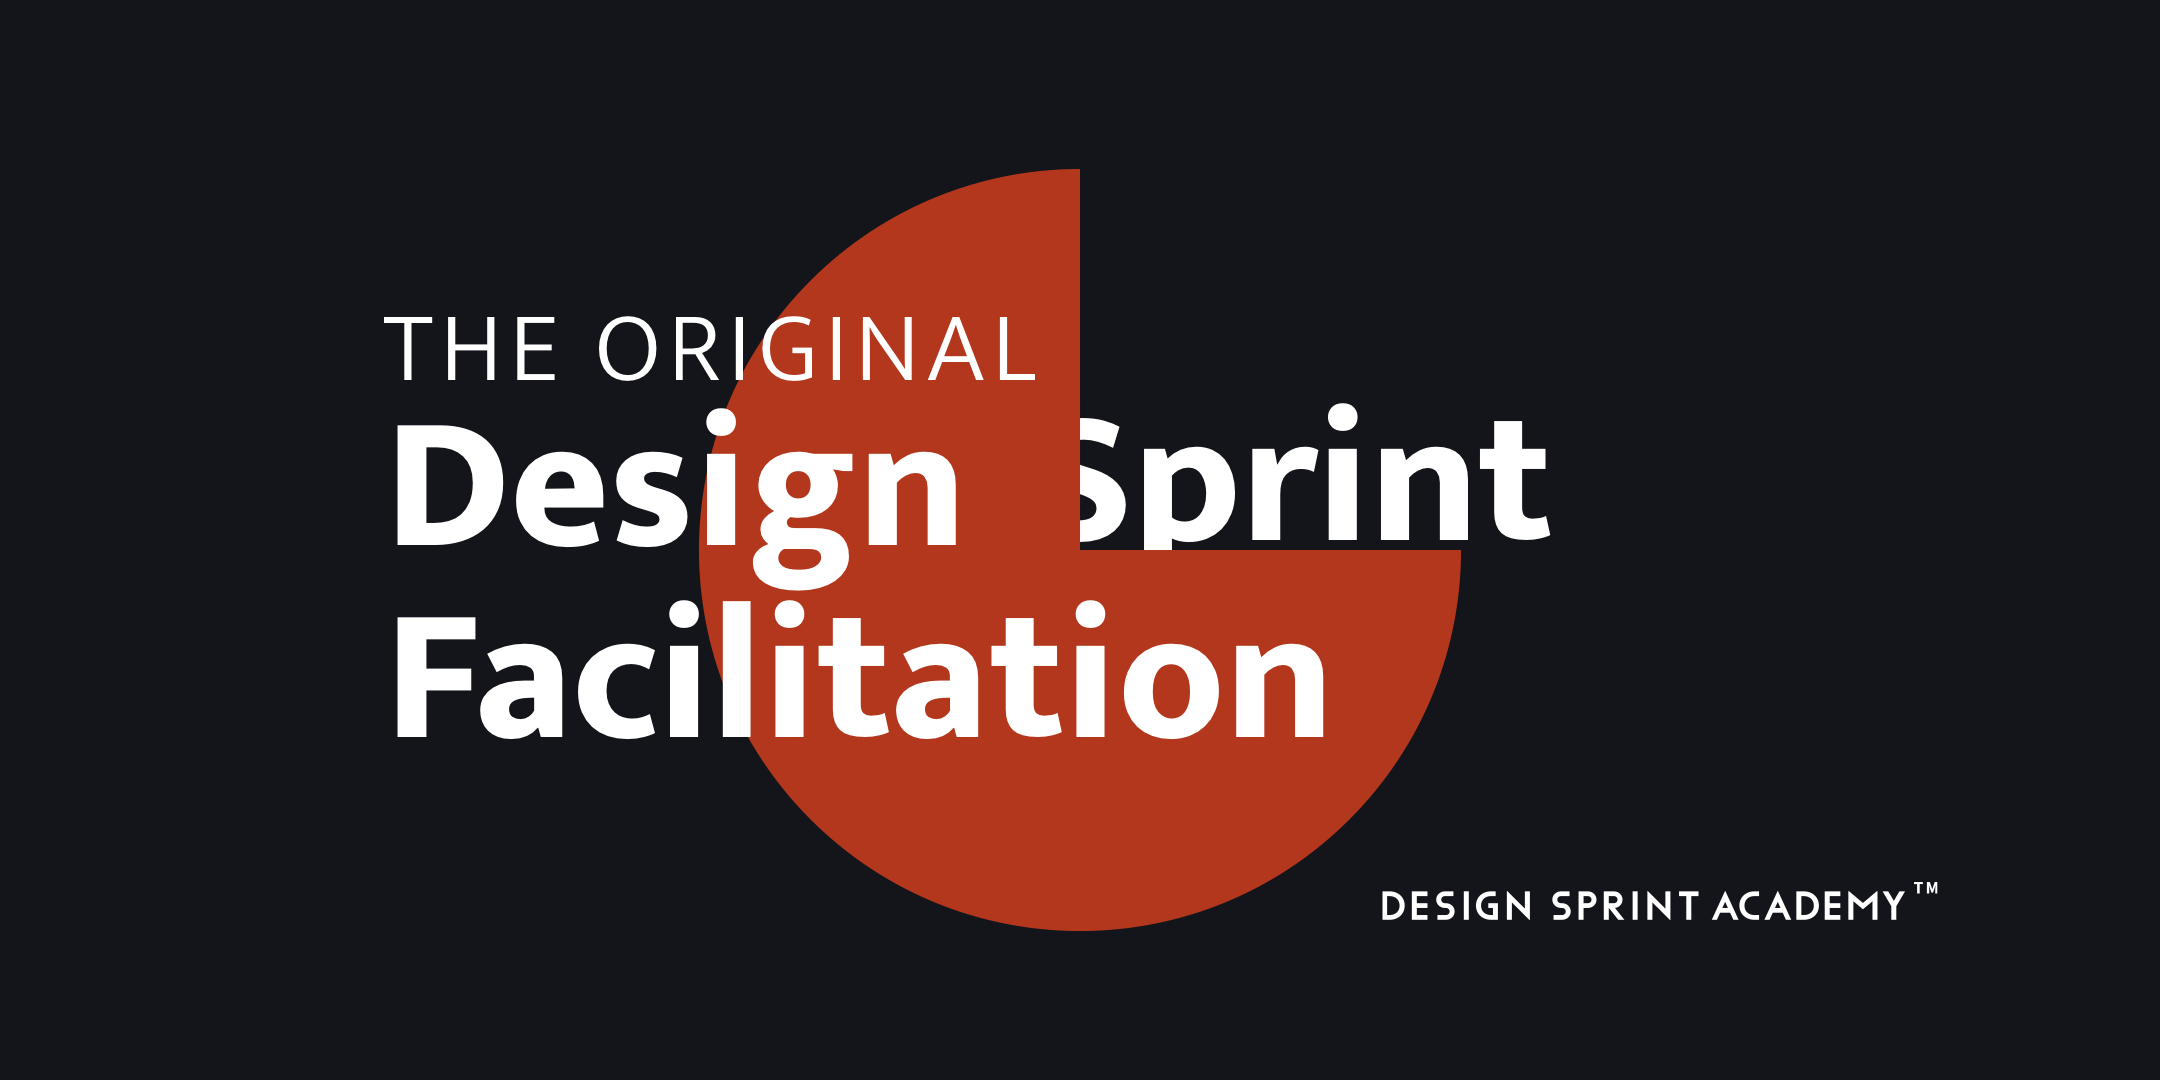 Design Sprint Facilitation